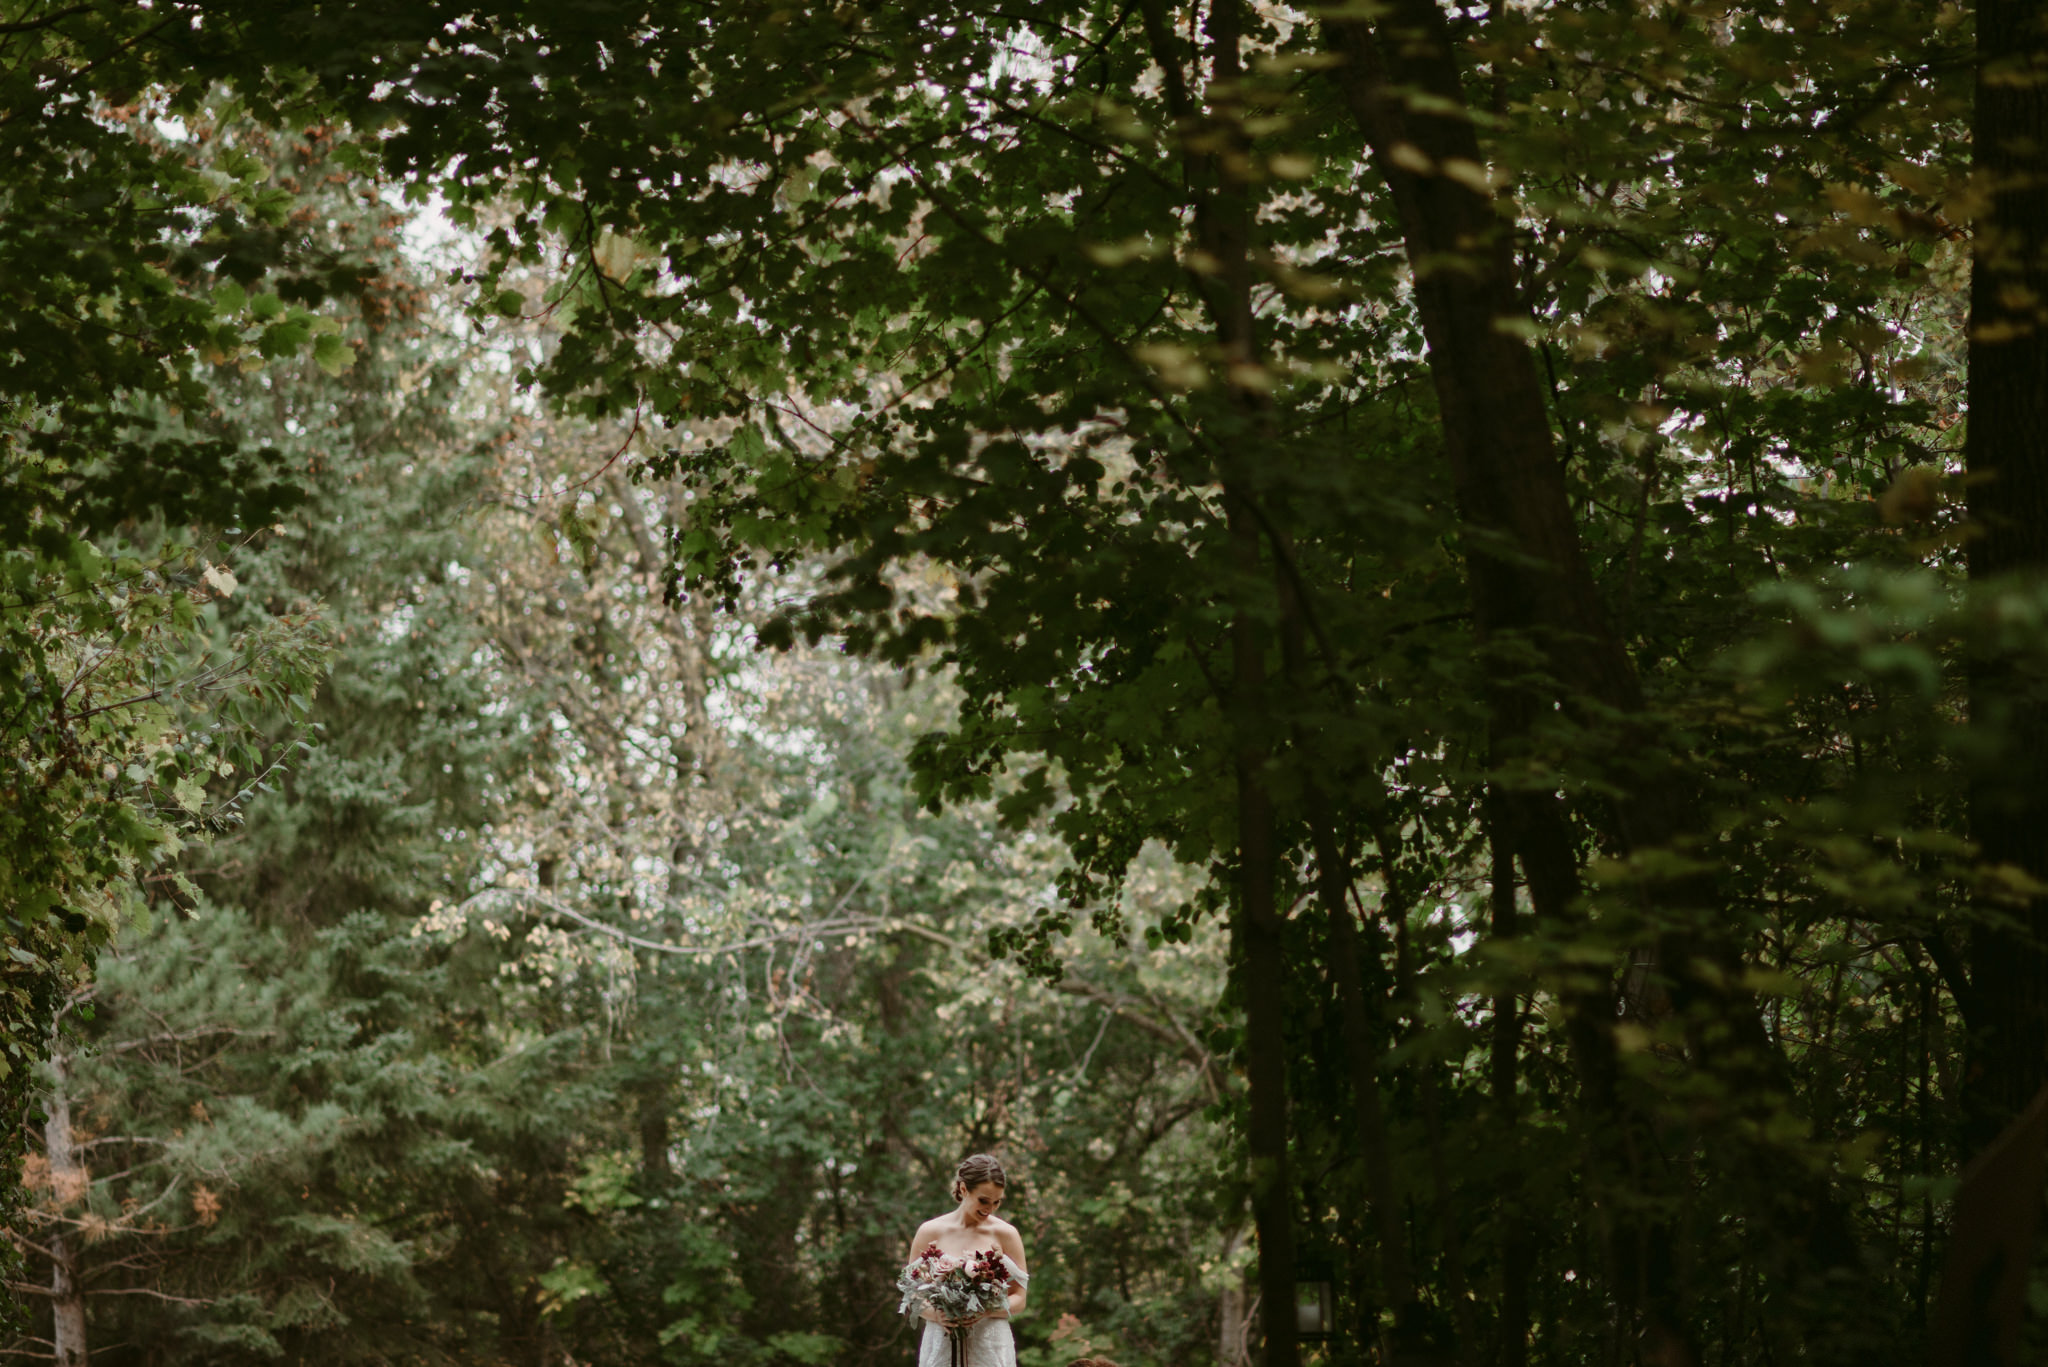 Bride waiting to walk down aisle in forest wedding ceremony